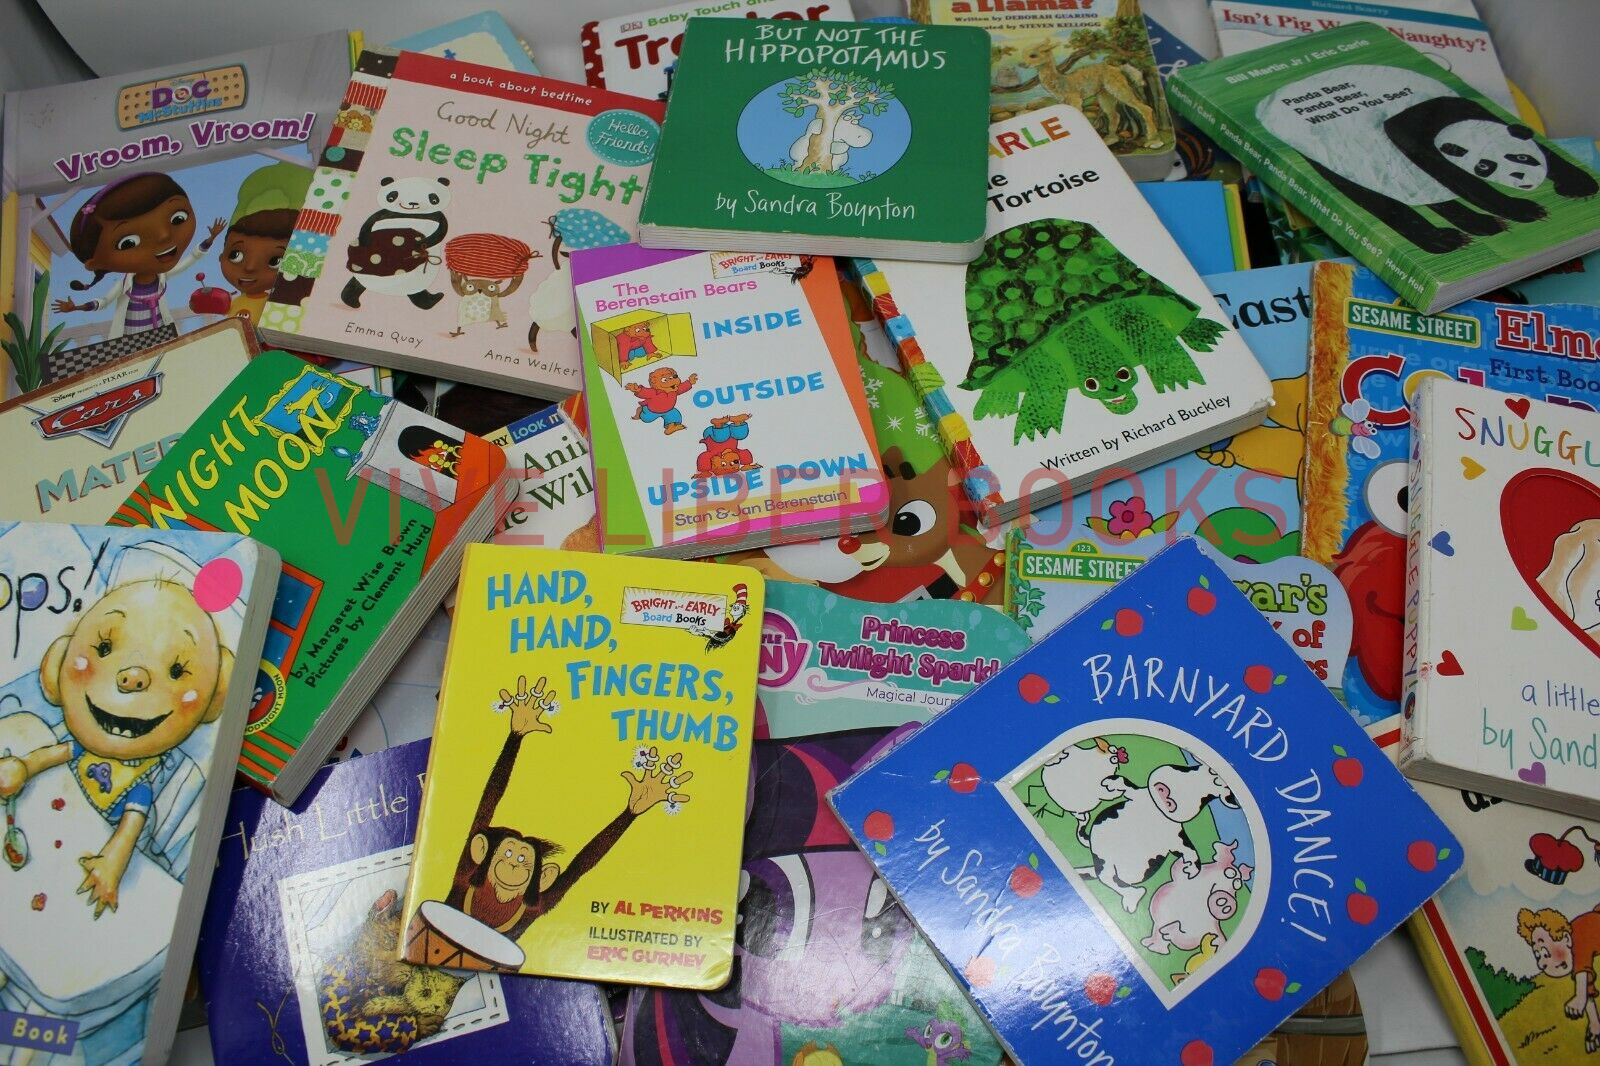 Lot of 20 - Board Books for Children's/ Kids/ Toddler Babies